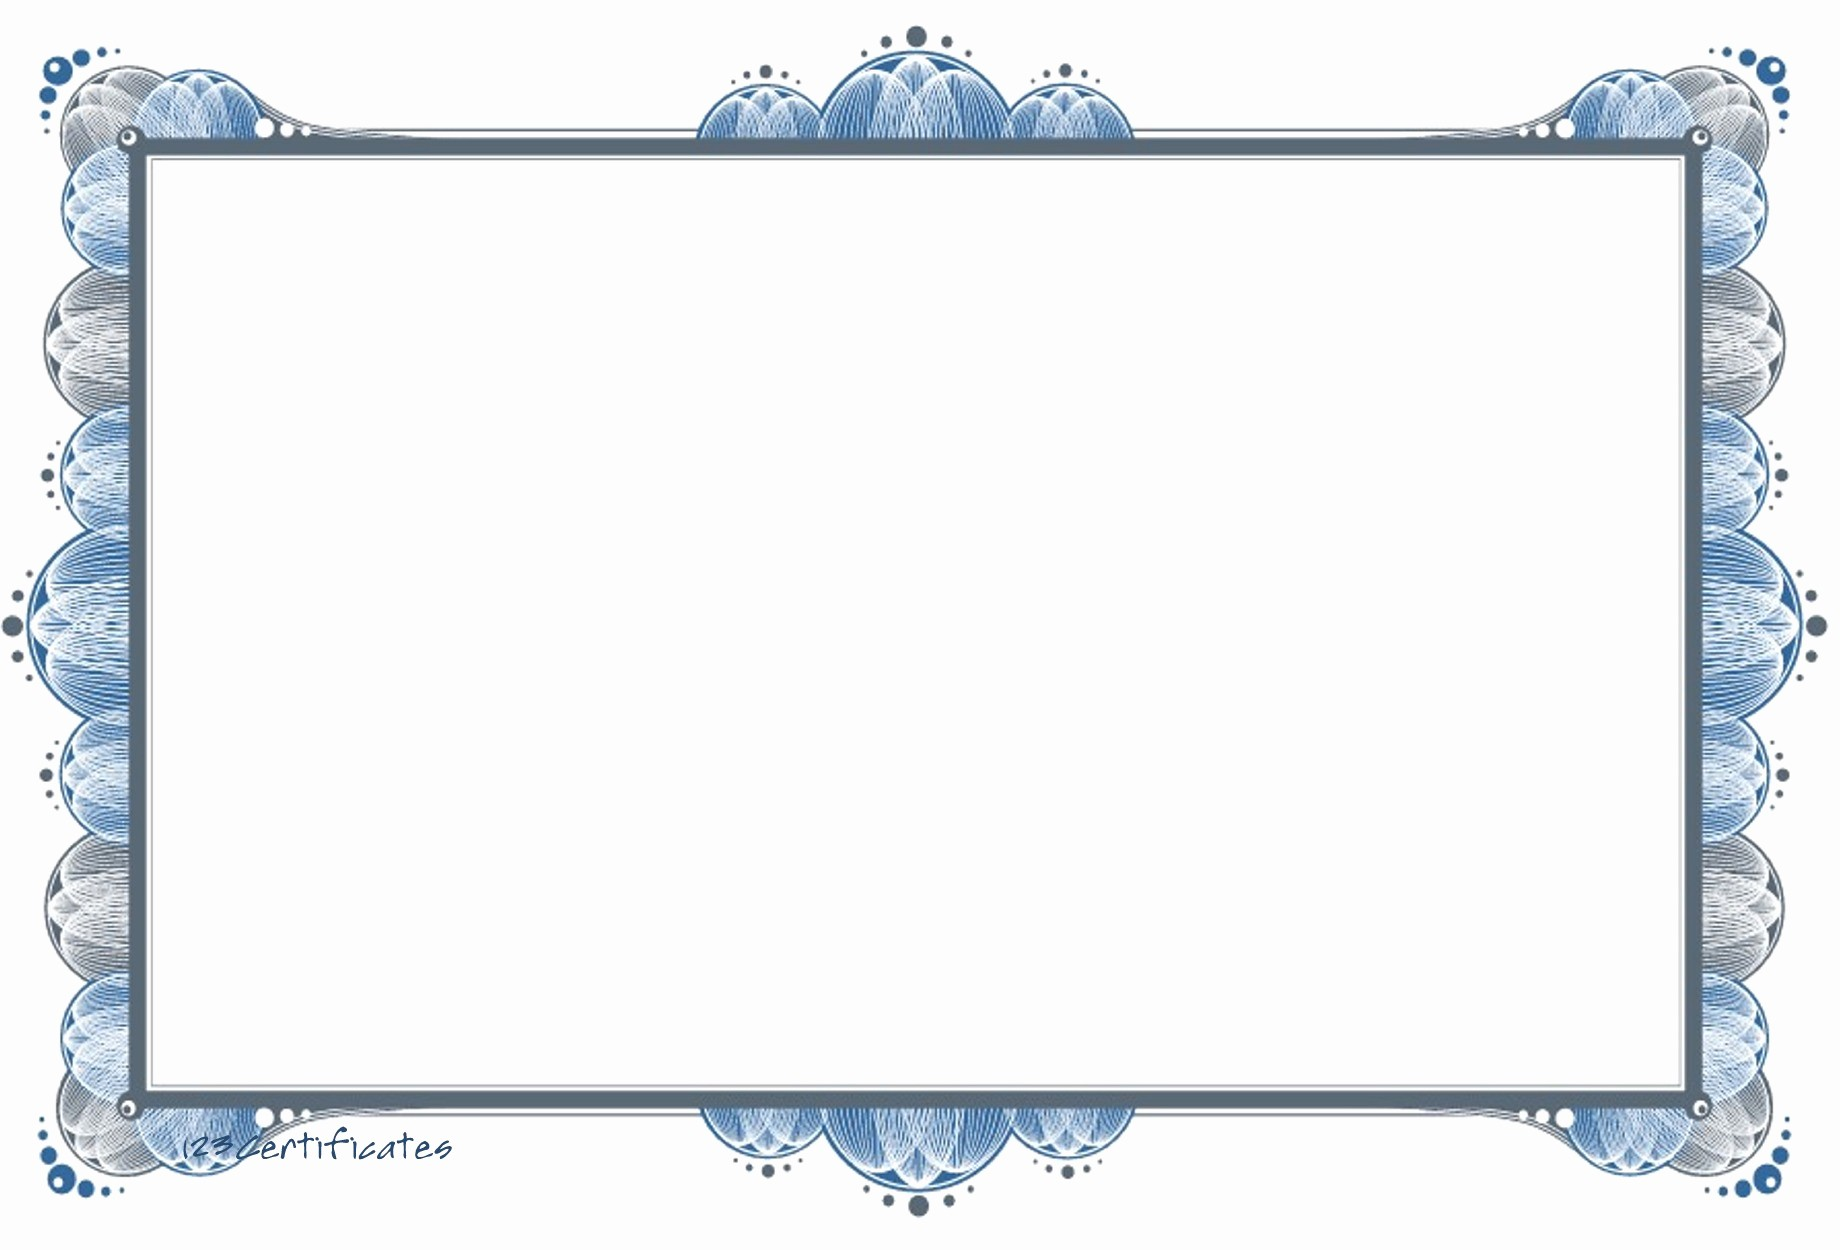 Certificate Border Template for Word Beautiful Free Certificate Borders to